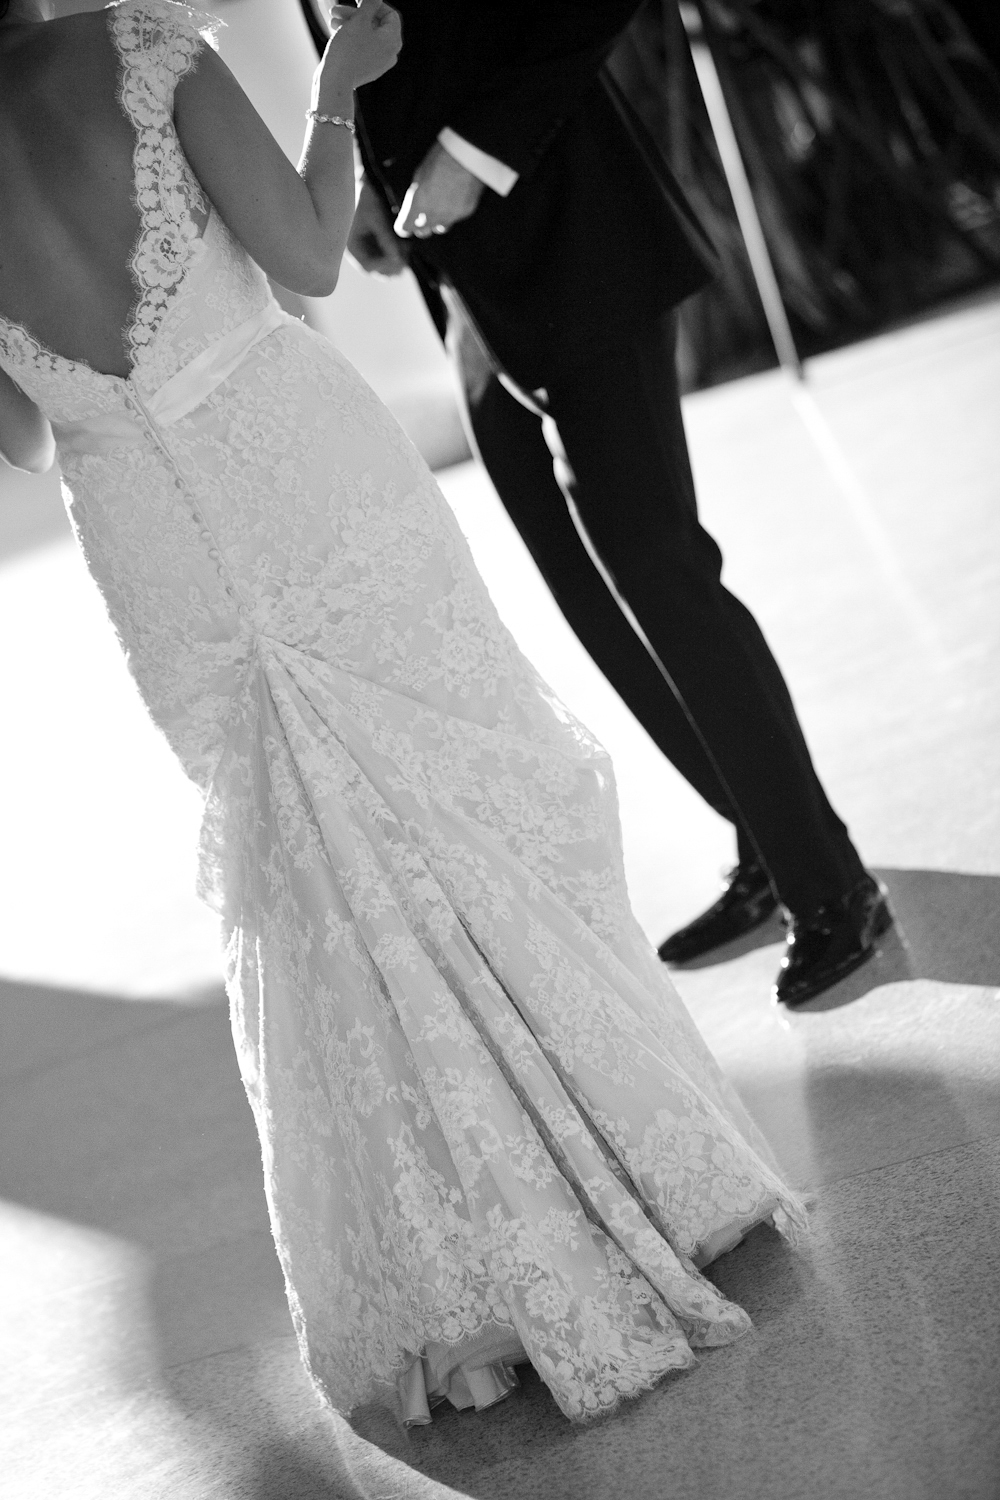 Indiana-State-Museum-Wedding-Photographer-Crowes-Eye-Photography-Bride-Groom-Reception-3649.jpg